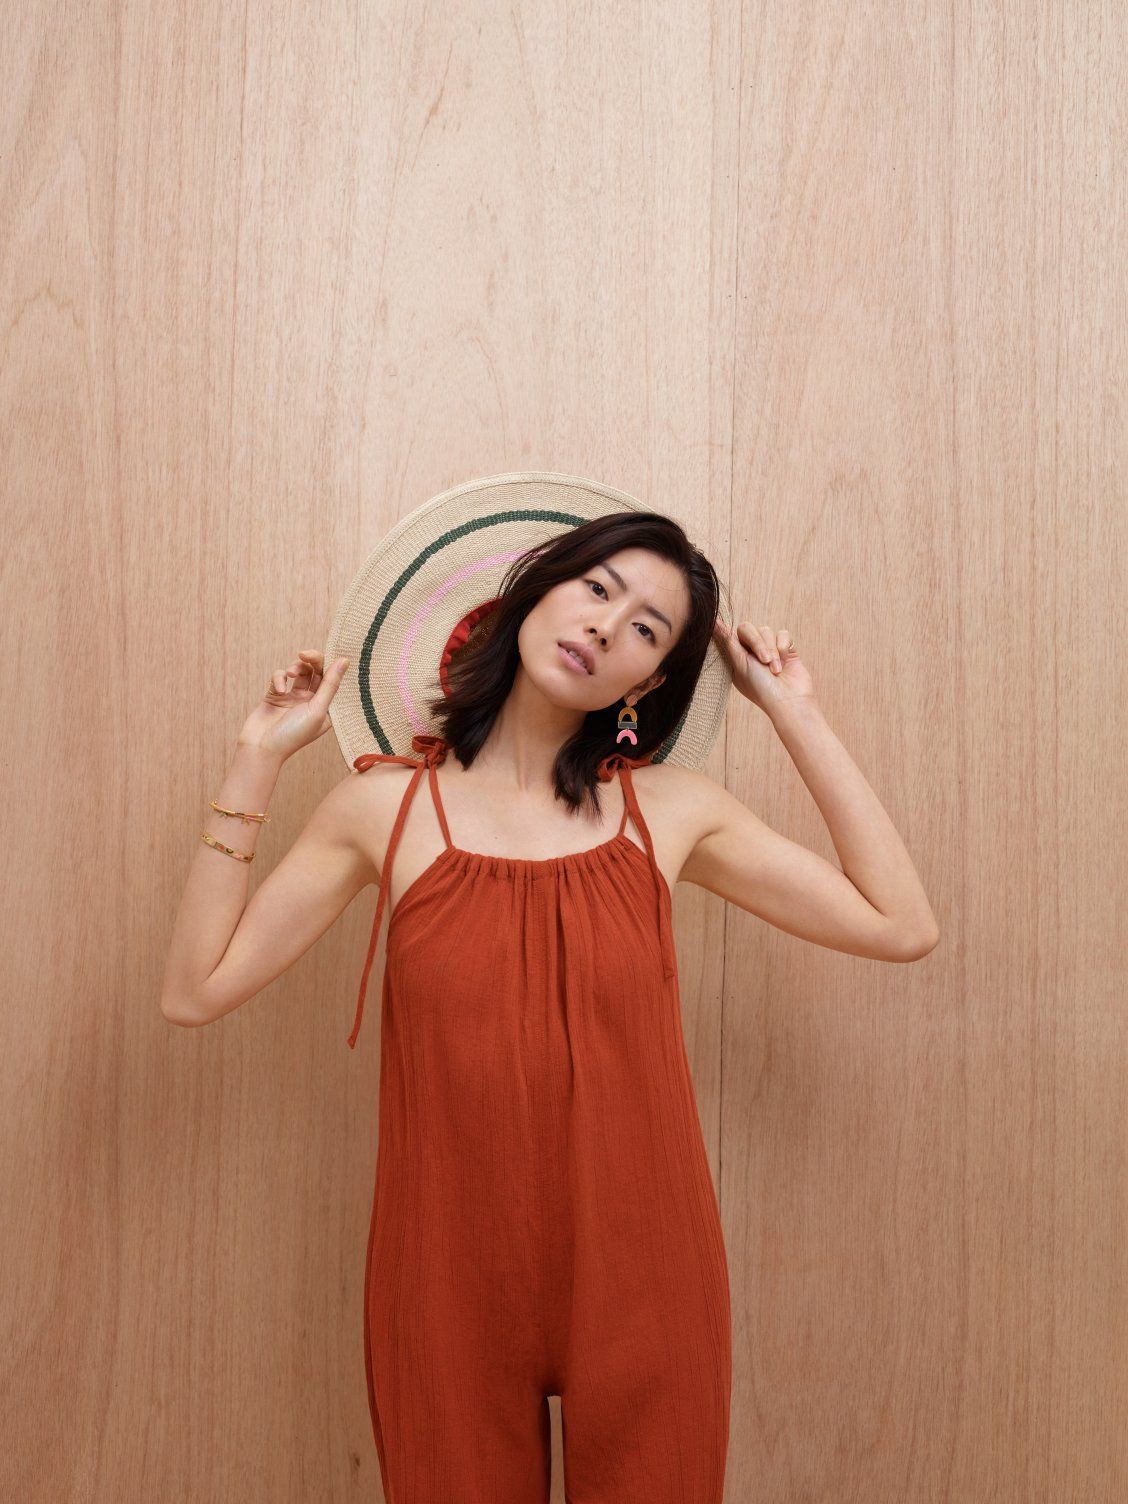 8458ec66 madewell x biltmore® tulum striped straw hat worn with gauze tie-strap  jumpsuit, newform statement earrings + enamel glider bangle bracelet.